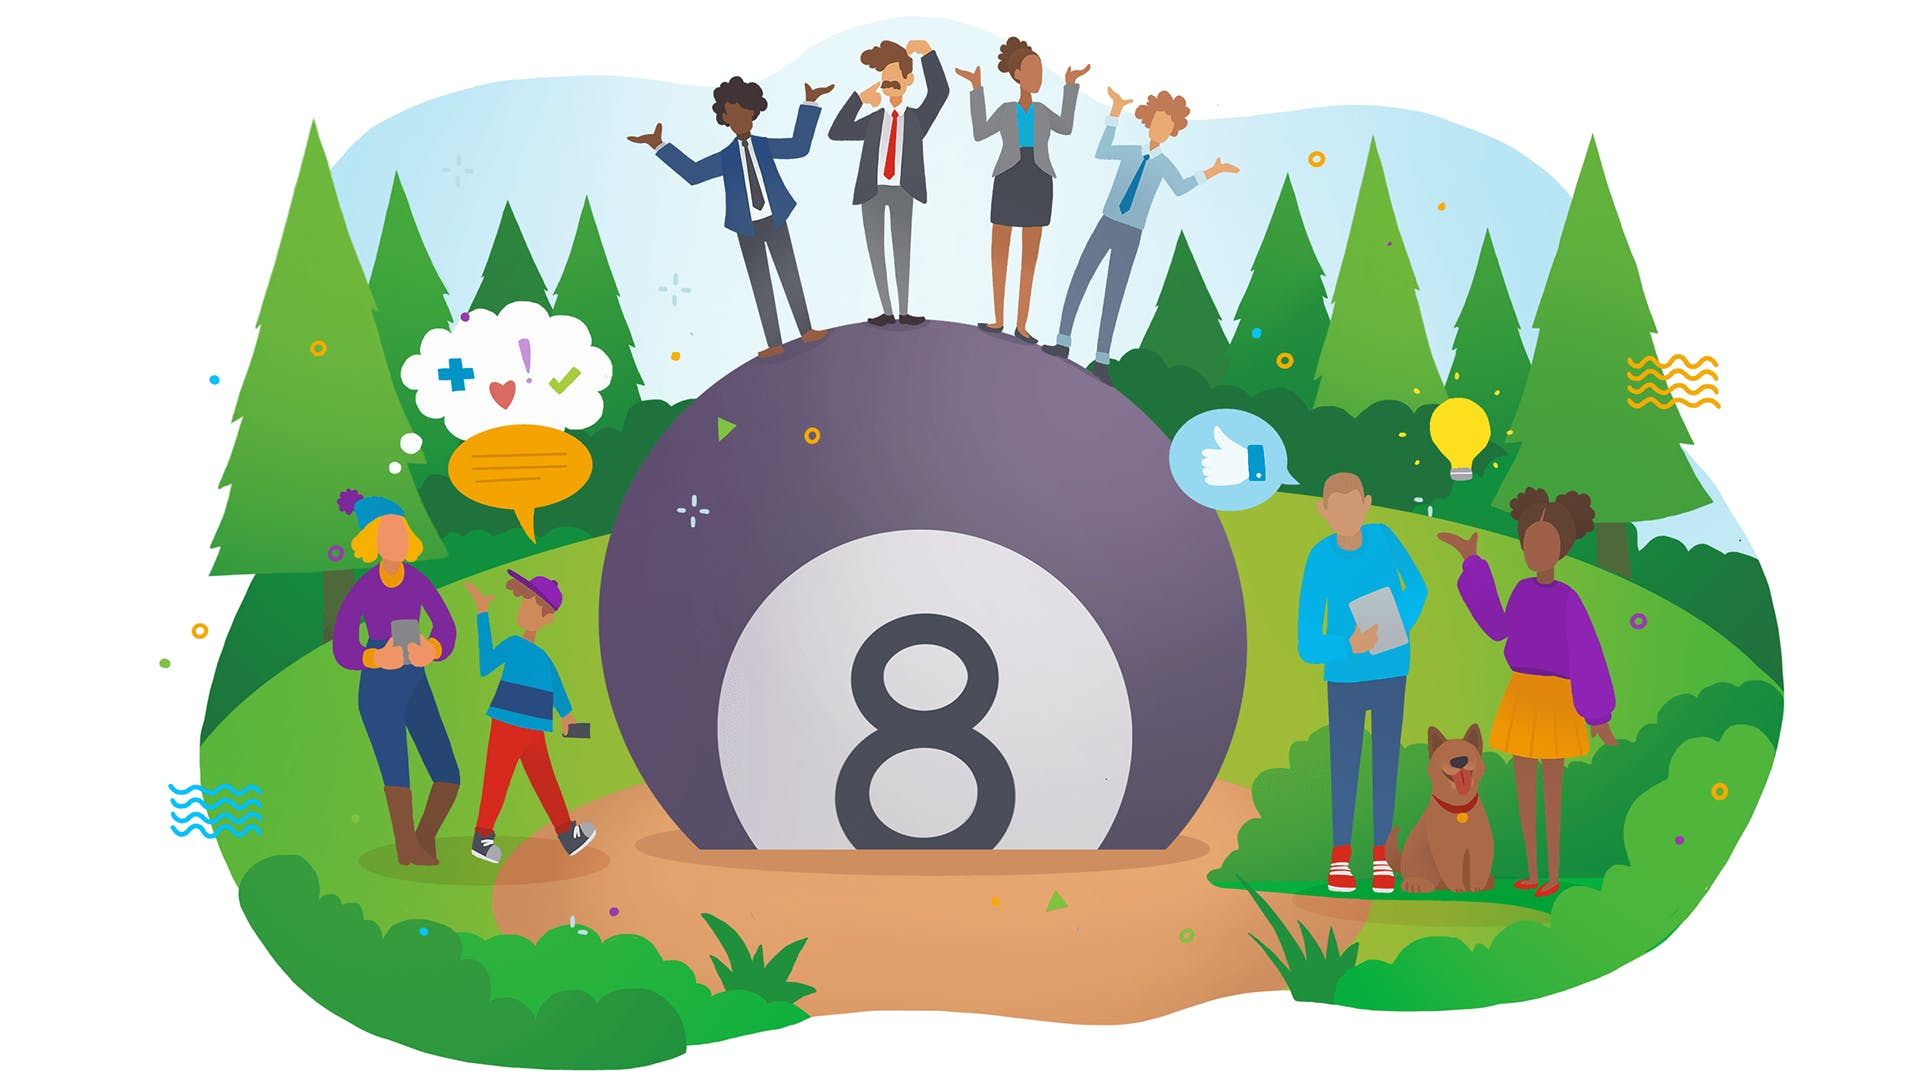 A colourful cartoon illustration of a large magic 8 ball with four people standing on top of it.